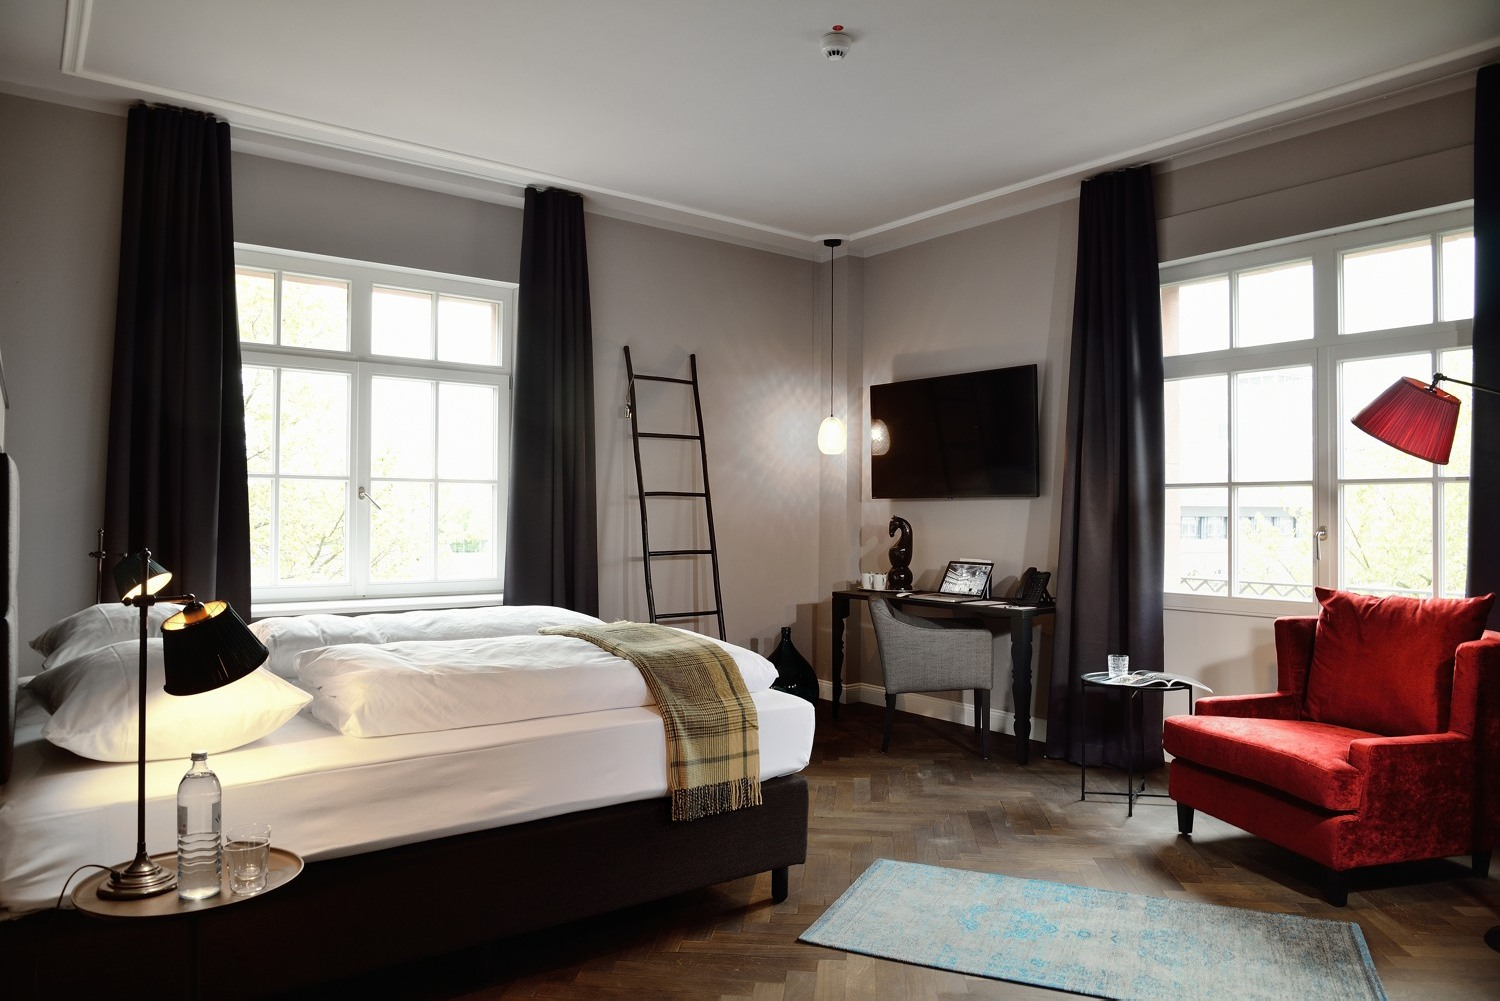 fotograf mannheim heidelberg hotel interieur architektur. Black Bedroom Furniture Sets. Home Design Ideas